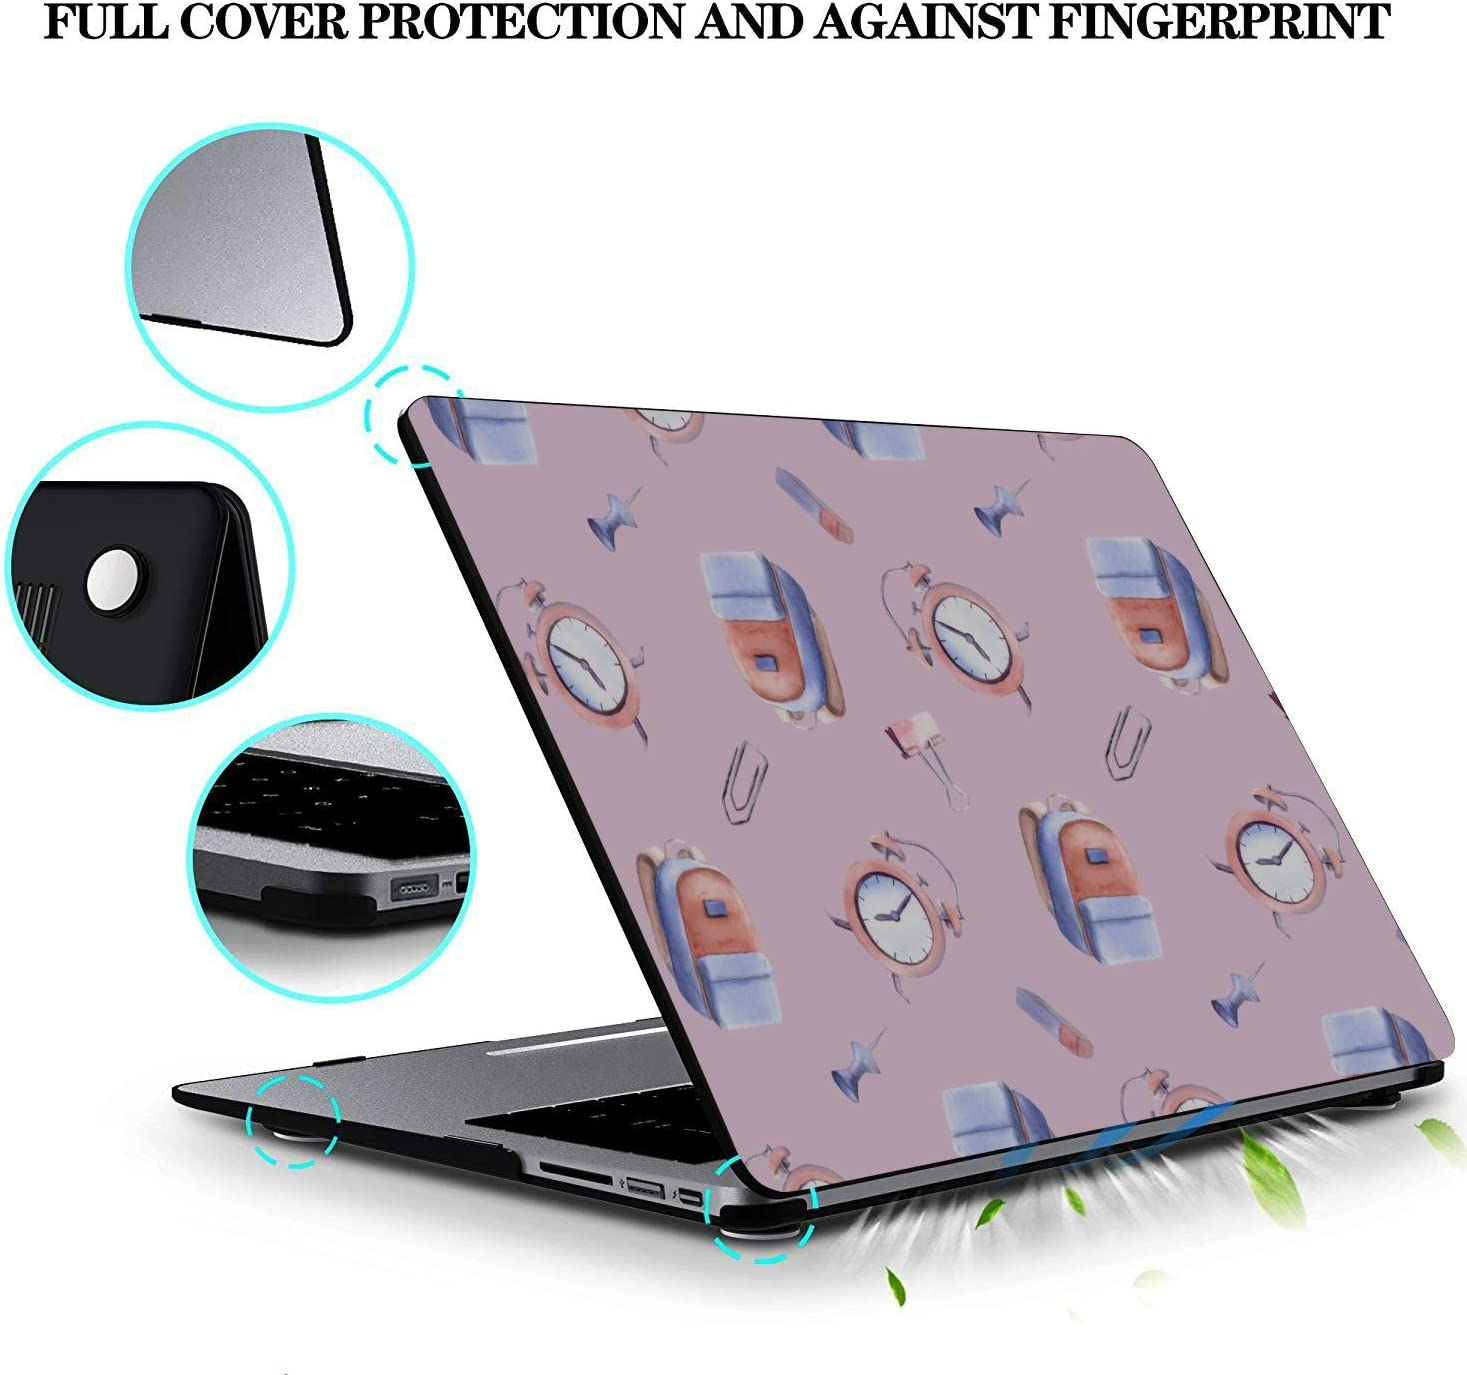 MacBook Pro Screen Protector School Bag Children Backpack Ideas Plastic Hard Shell Compatible Mac Air 11 Pro 13 15 13 MacBook Pro Case Protection for MacBook 2016-2019 Version